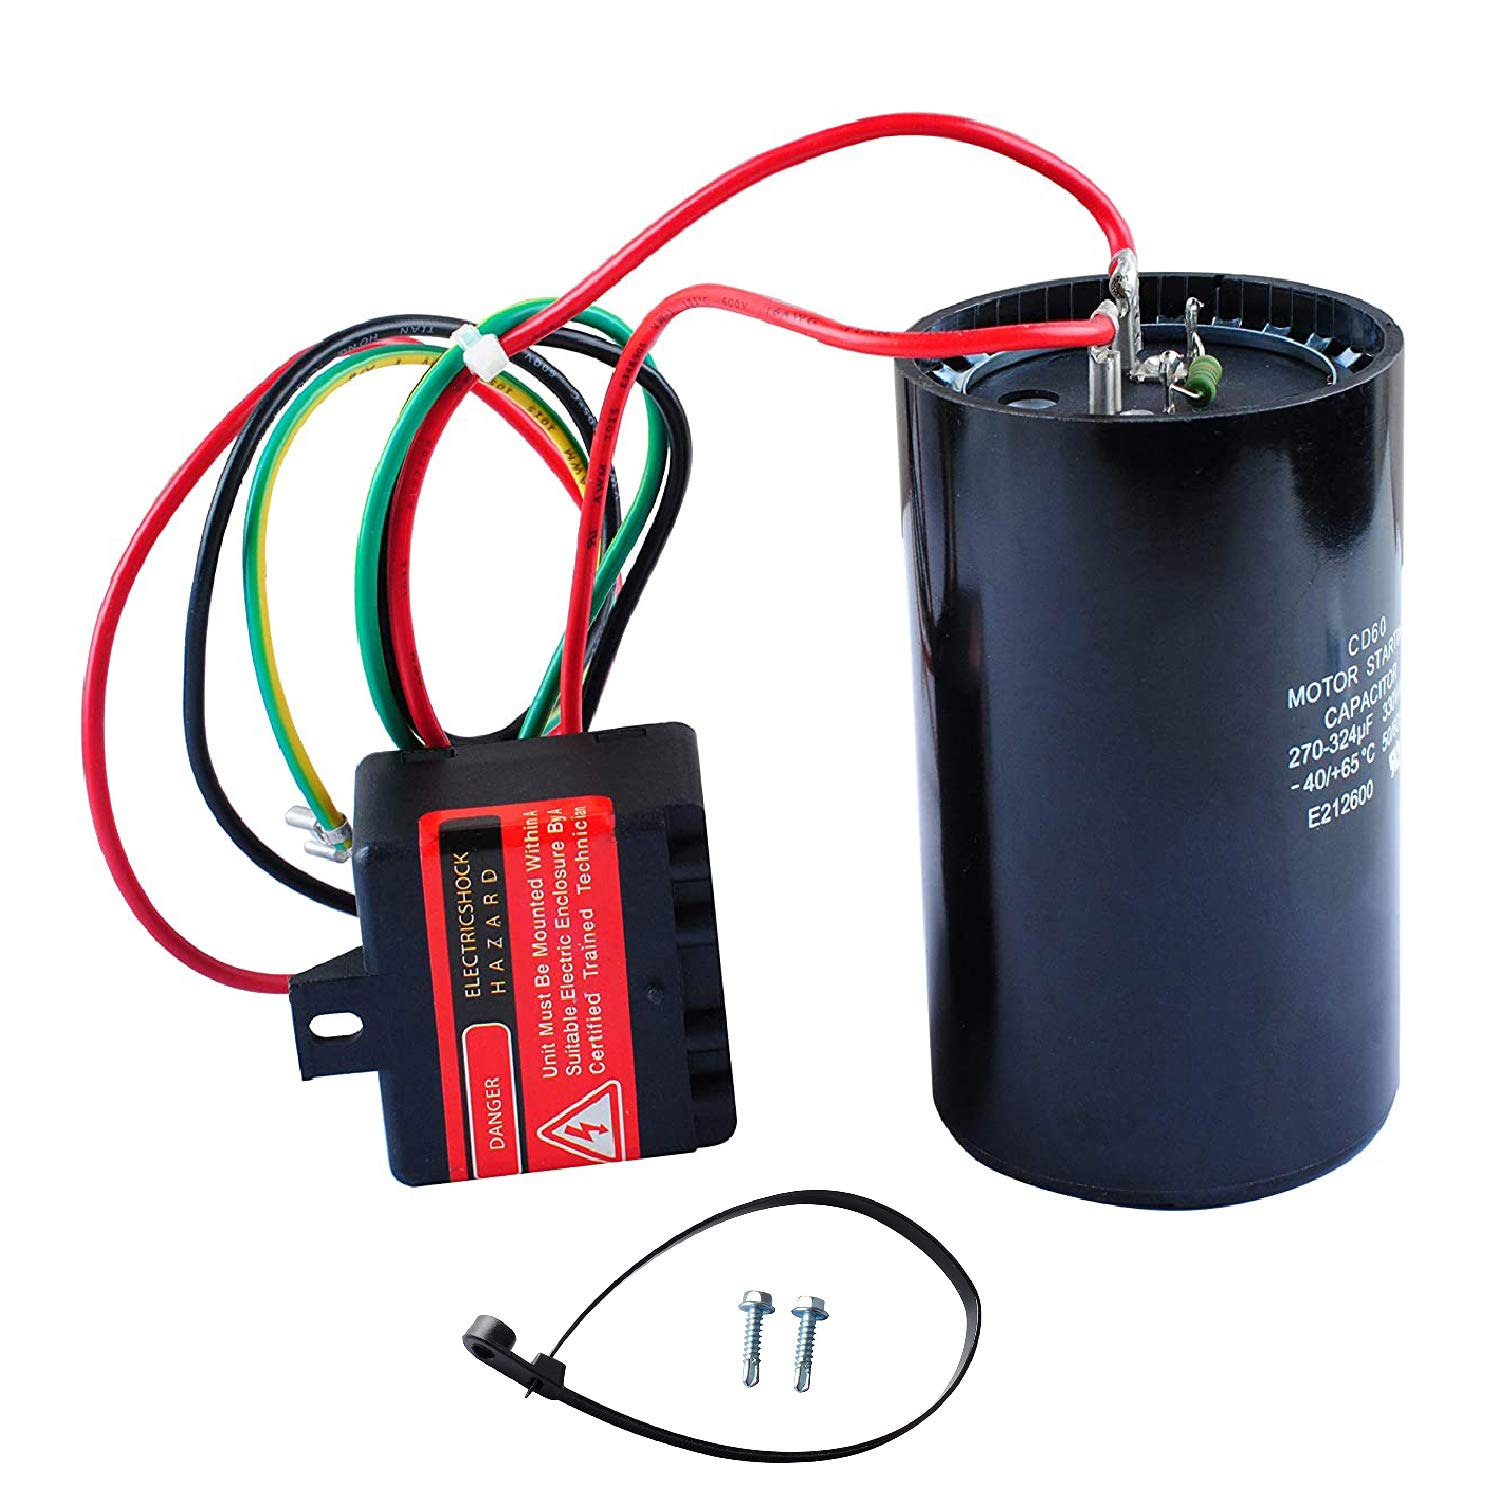 5-2-1 CSR-U3 Compressor Saver AC Hard Start Capacitor by Blue Stars Hvac Hard Start Kit Compatible for 4 to 5 Ton Units